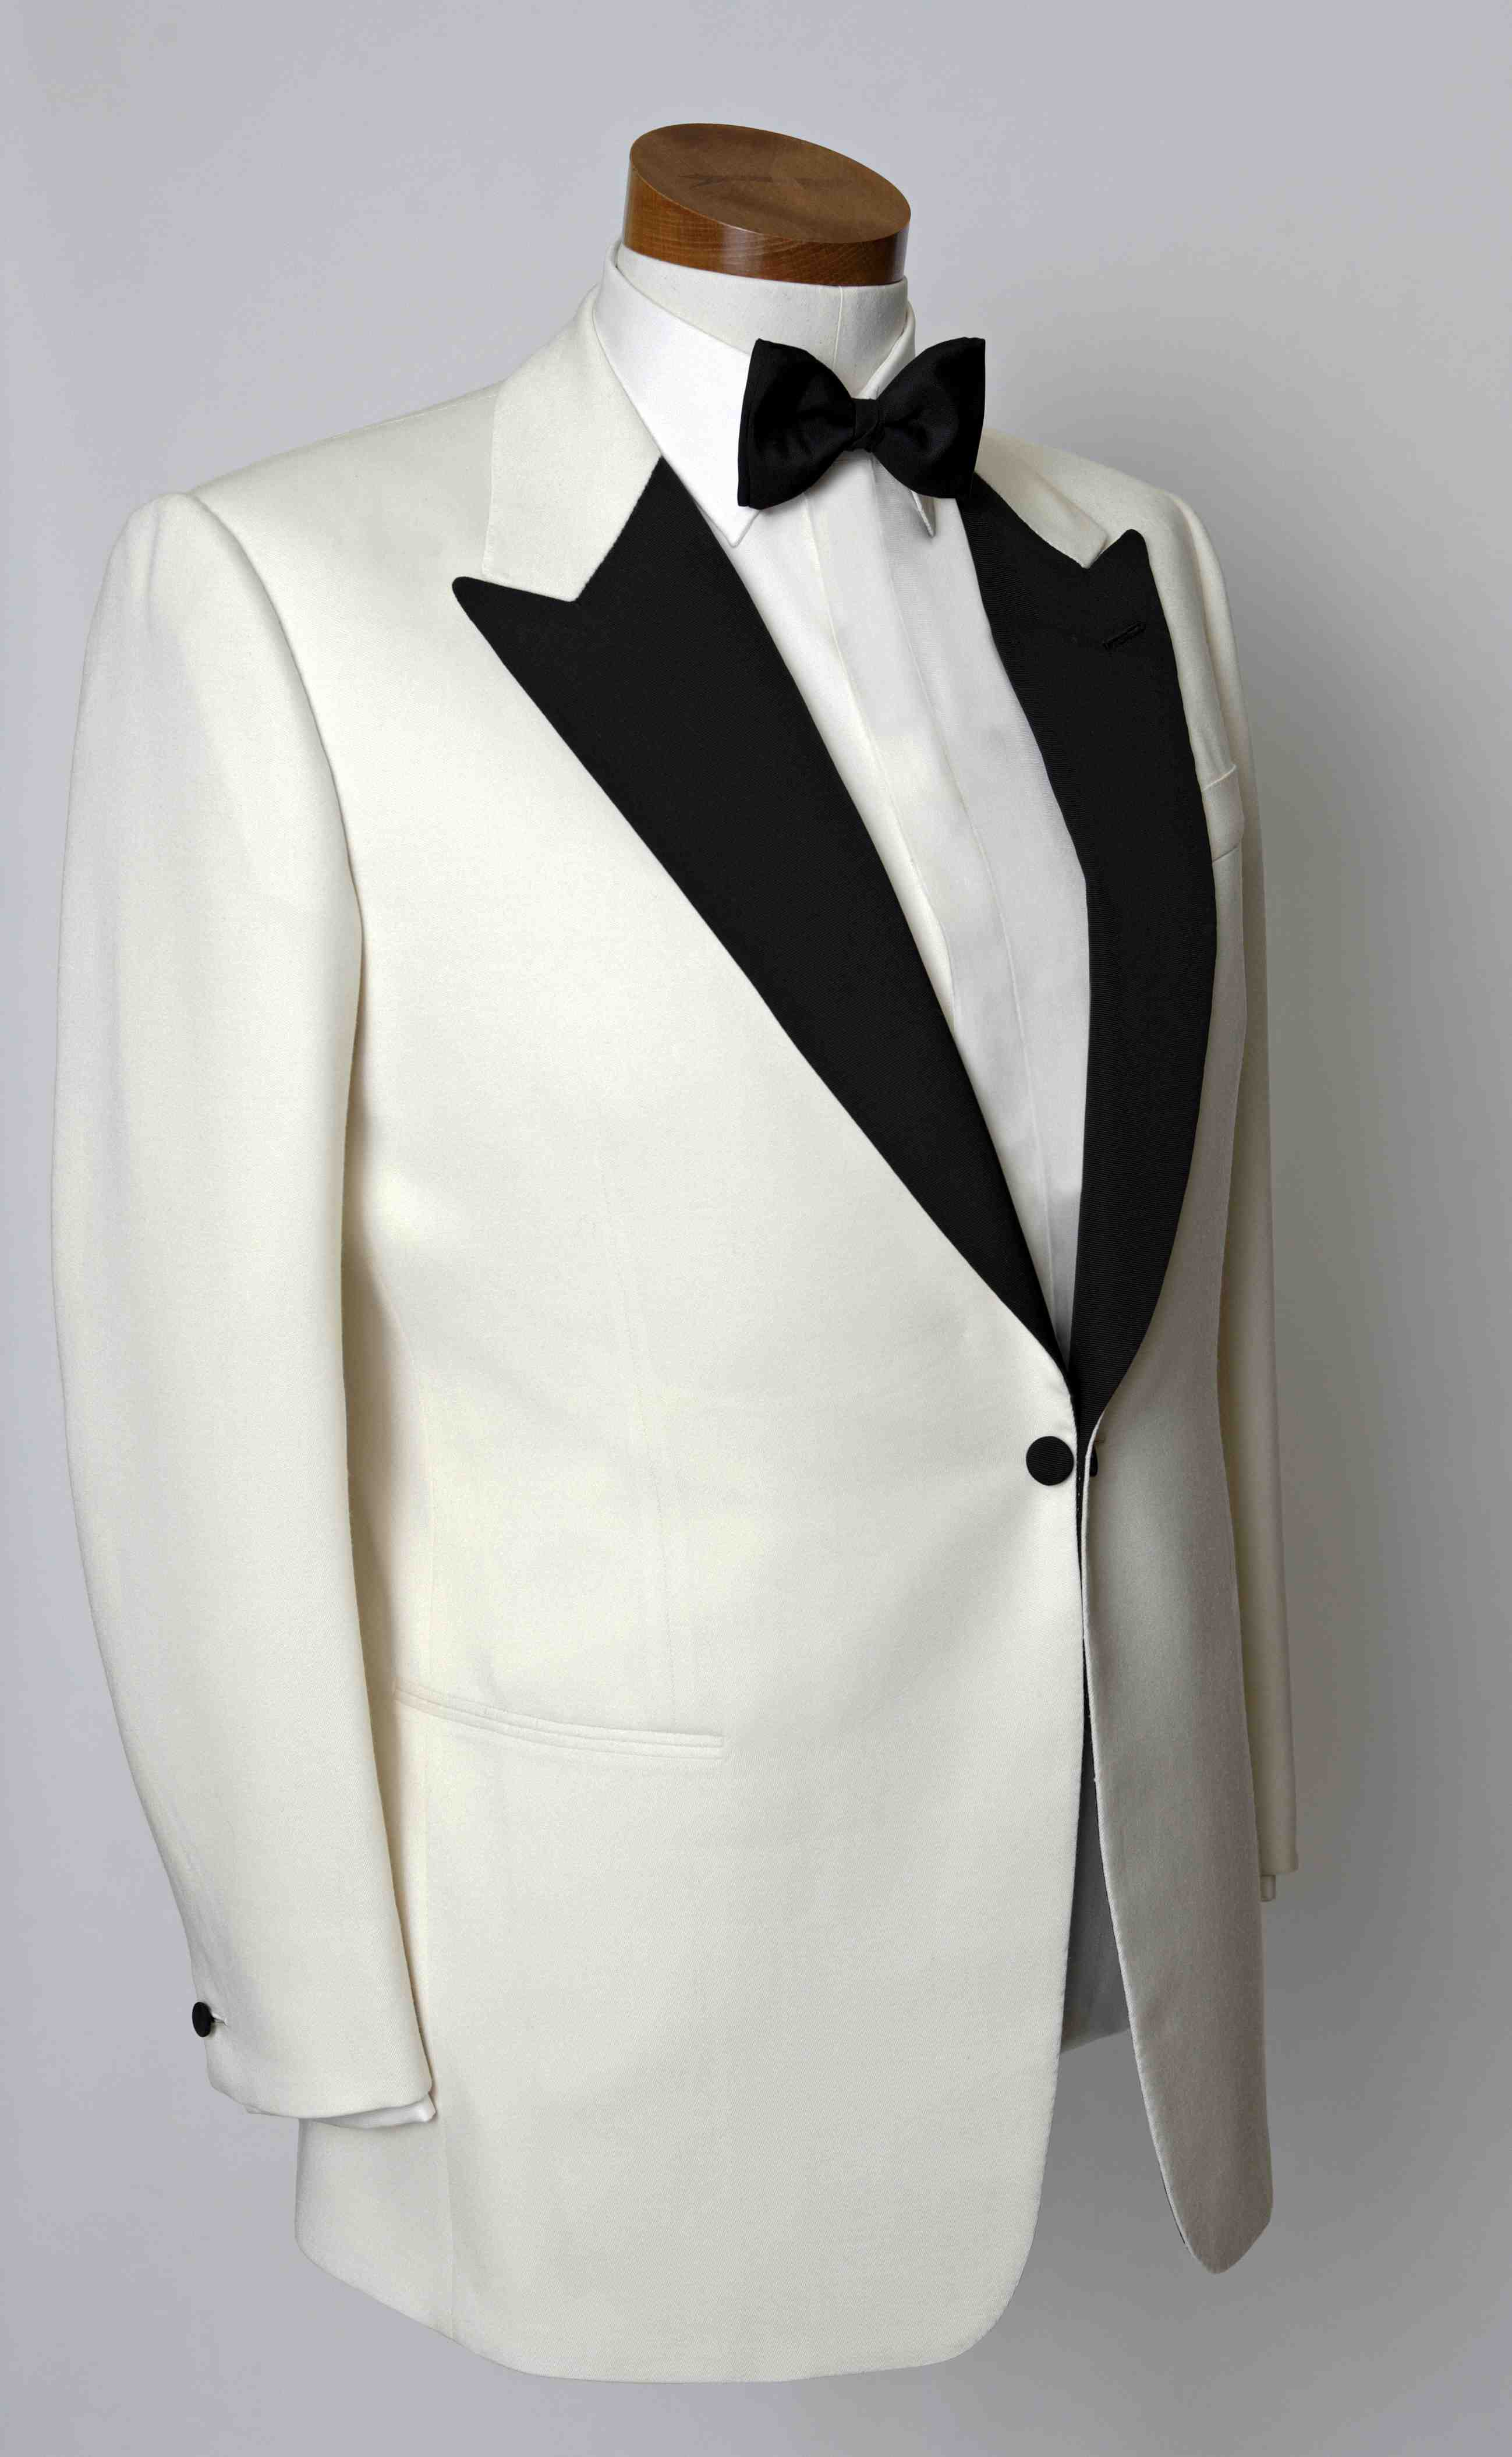 SB white tuxedo, example of bespoke tailoring by Dege & Skinner of Savile Row, London